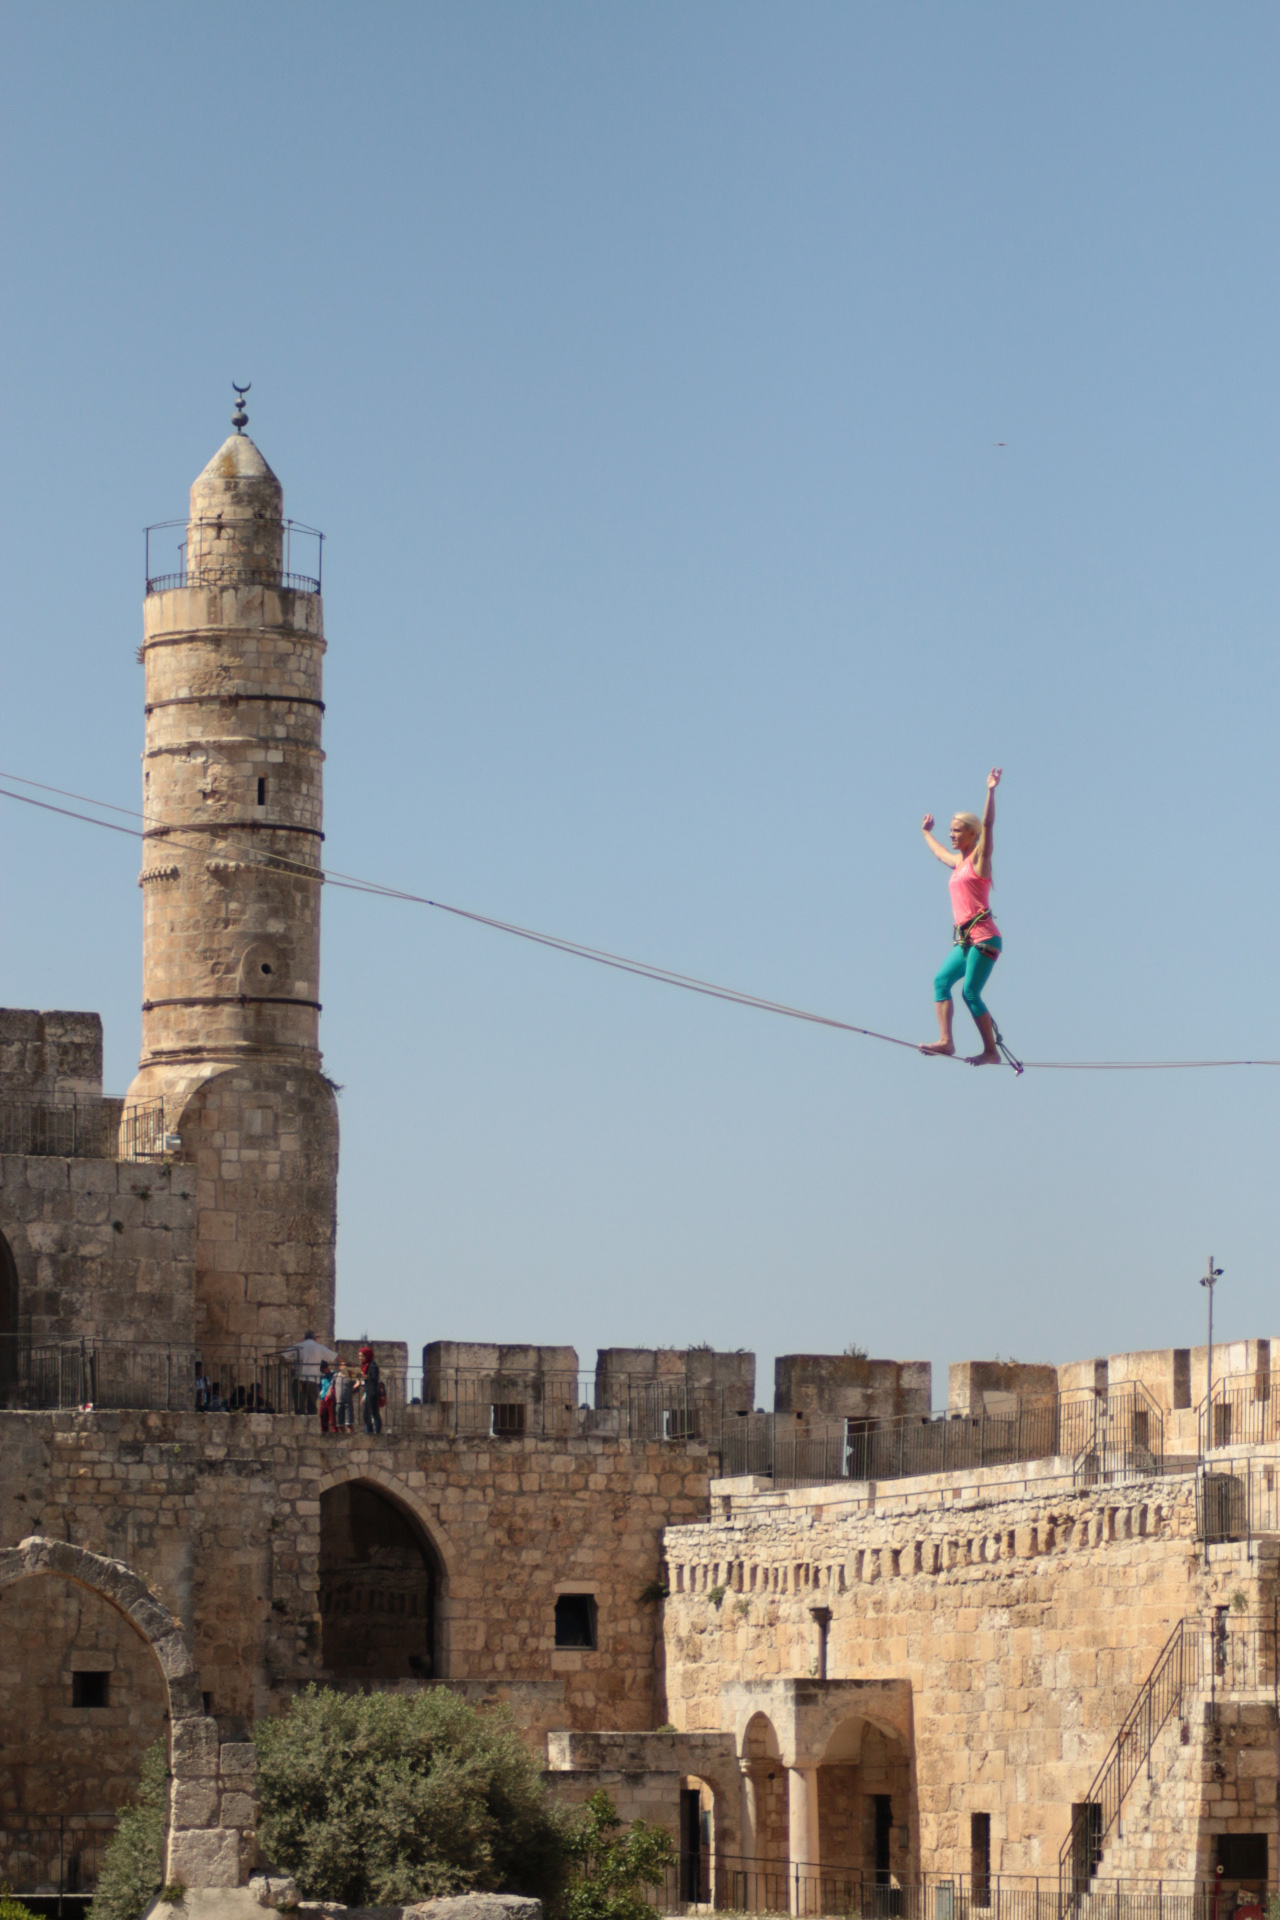 The slackline crossing the courtyard of the Tower of David was 34 meters long and 20+ meters high. Photo by Tower of David Museum